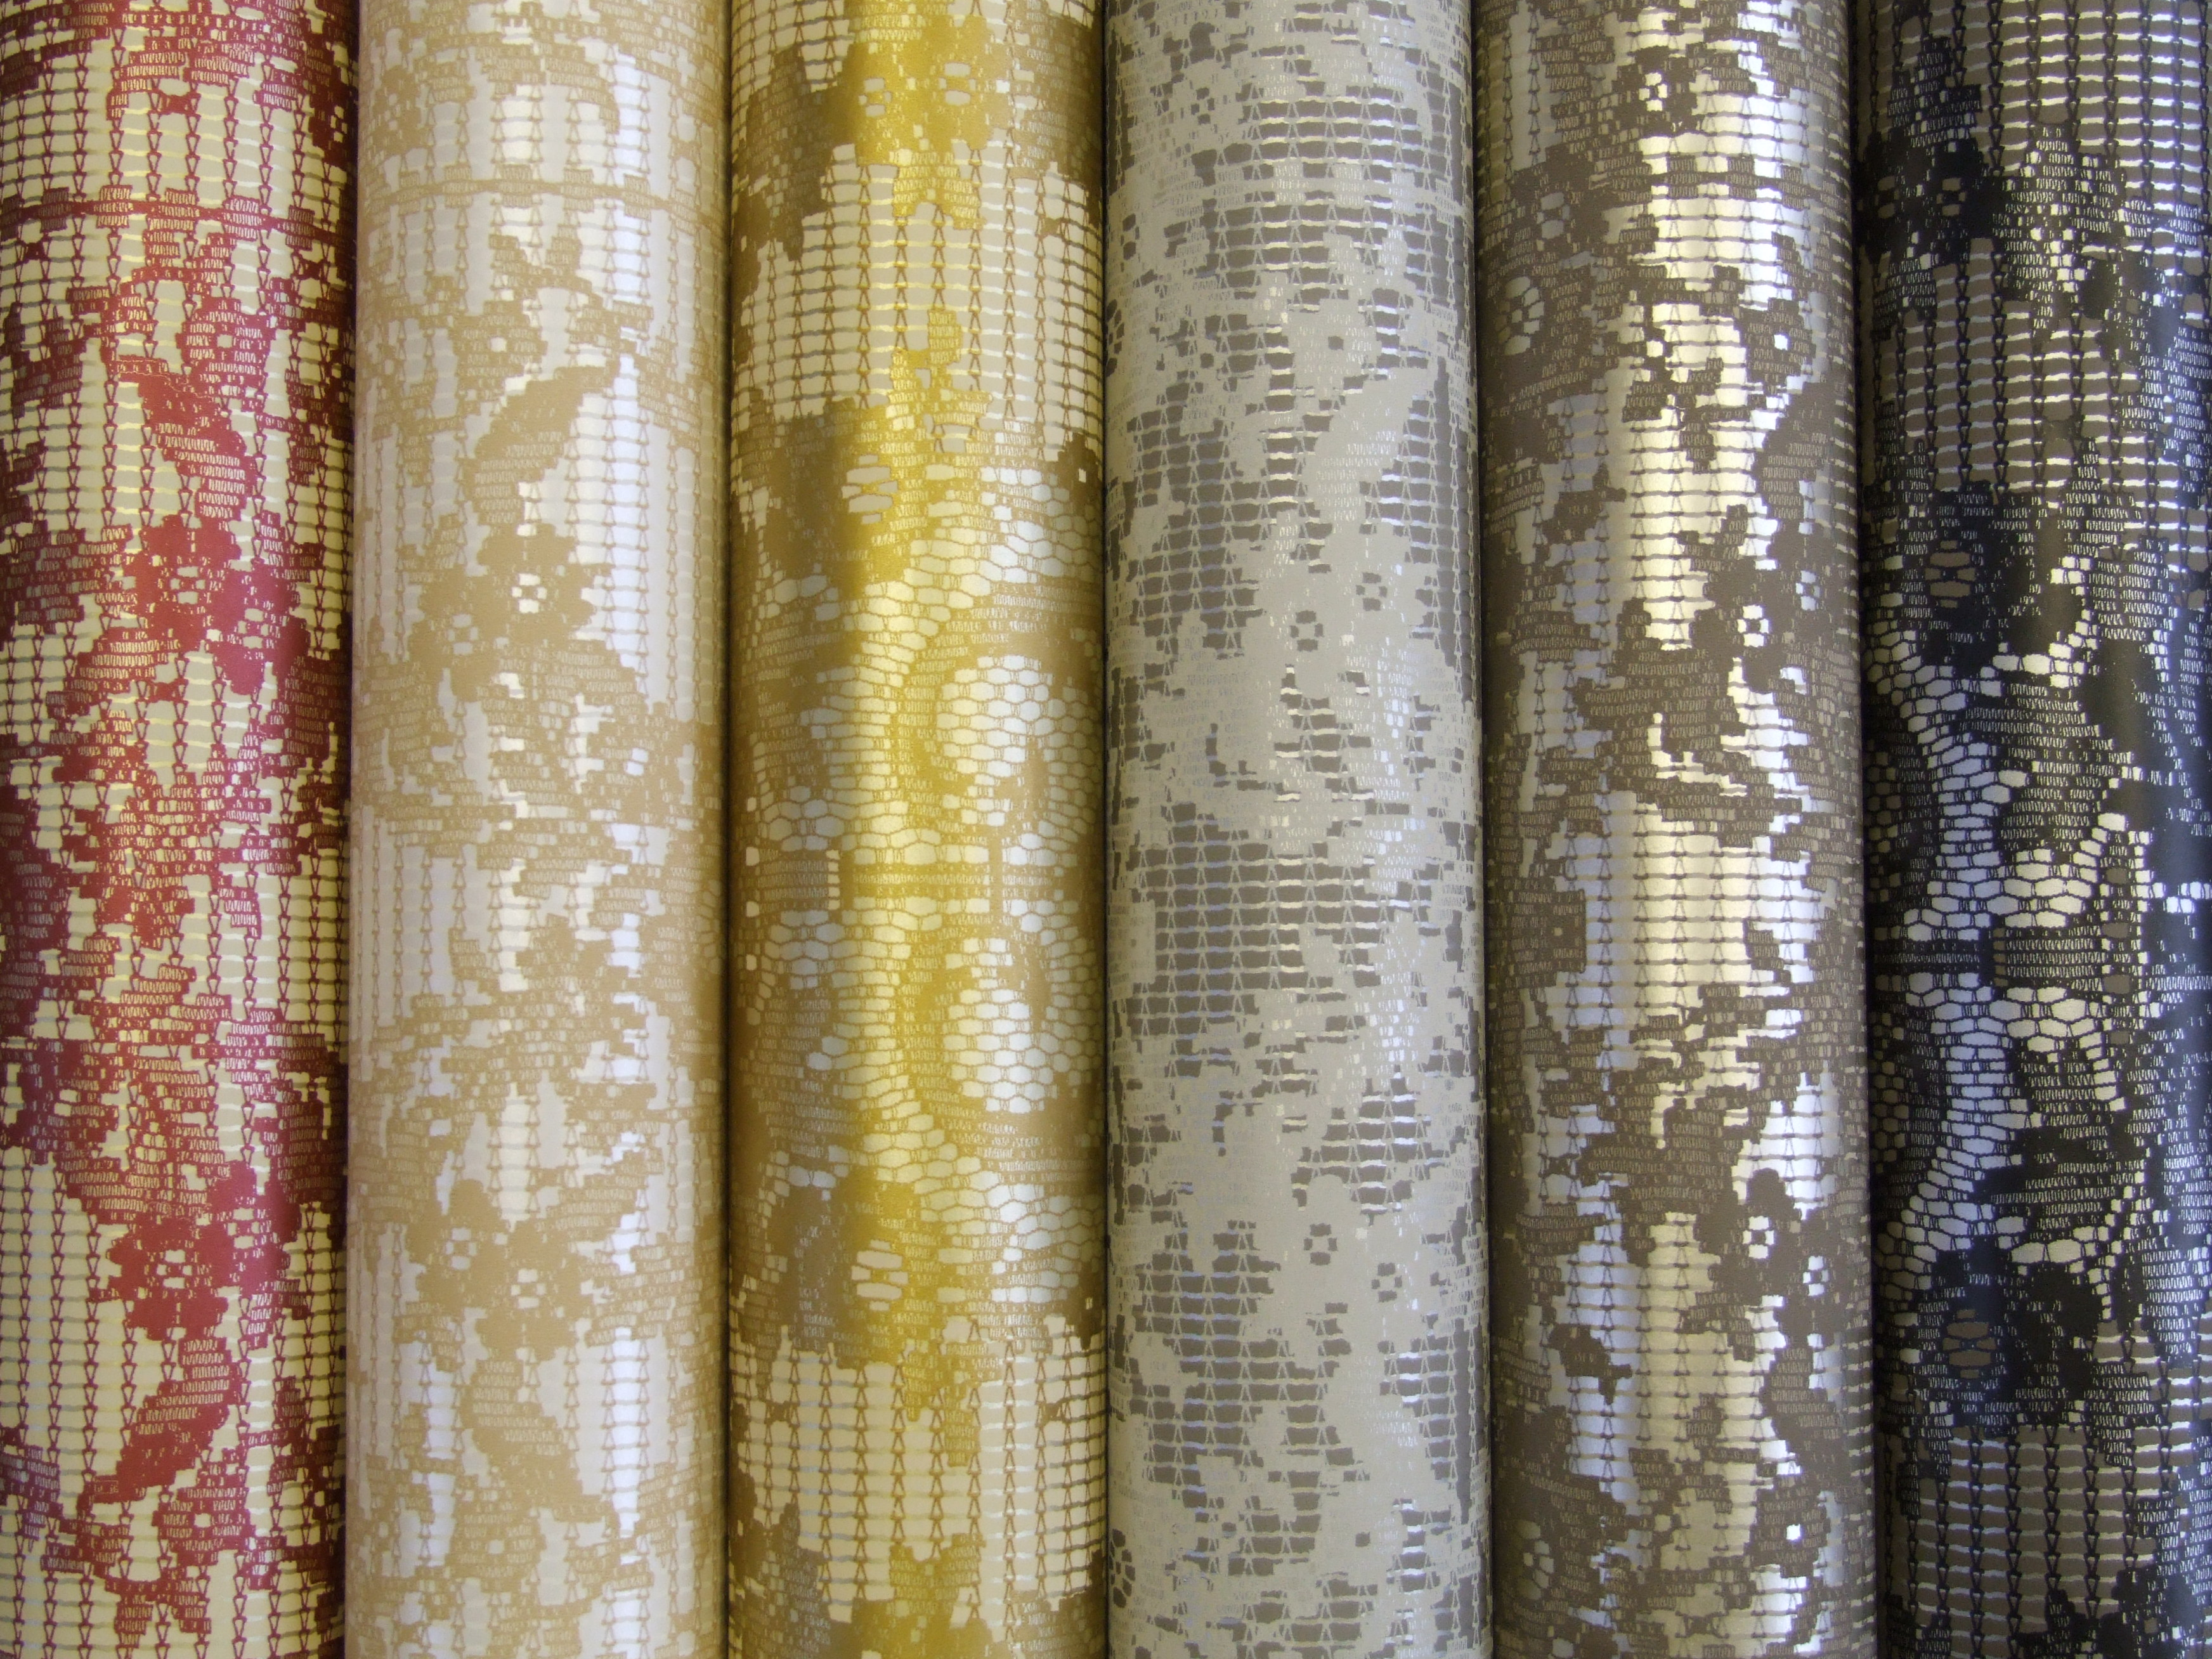 Pin Home Depot Wallpaper Collection Paper Lace From 3488x2616